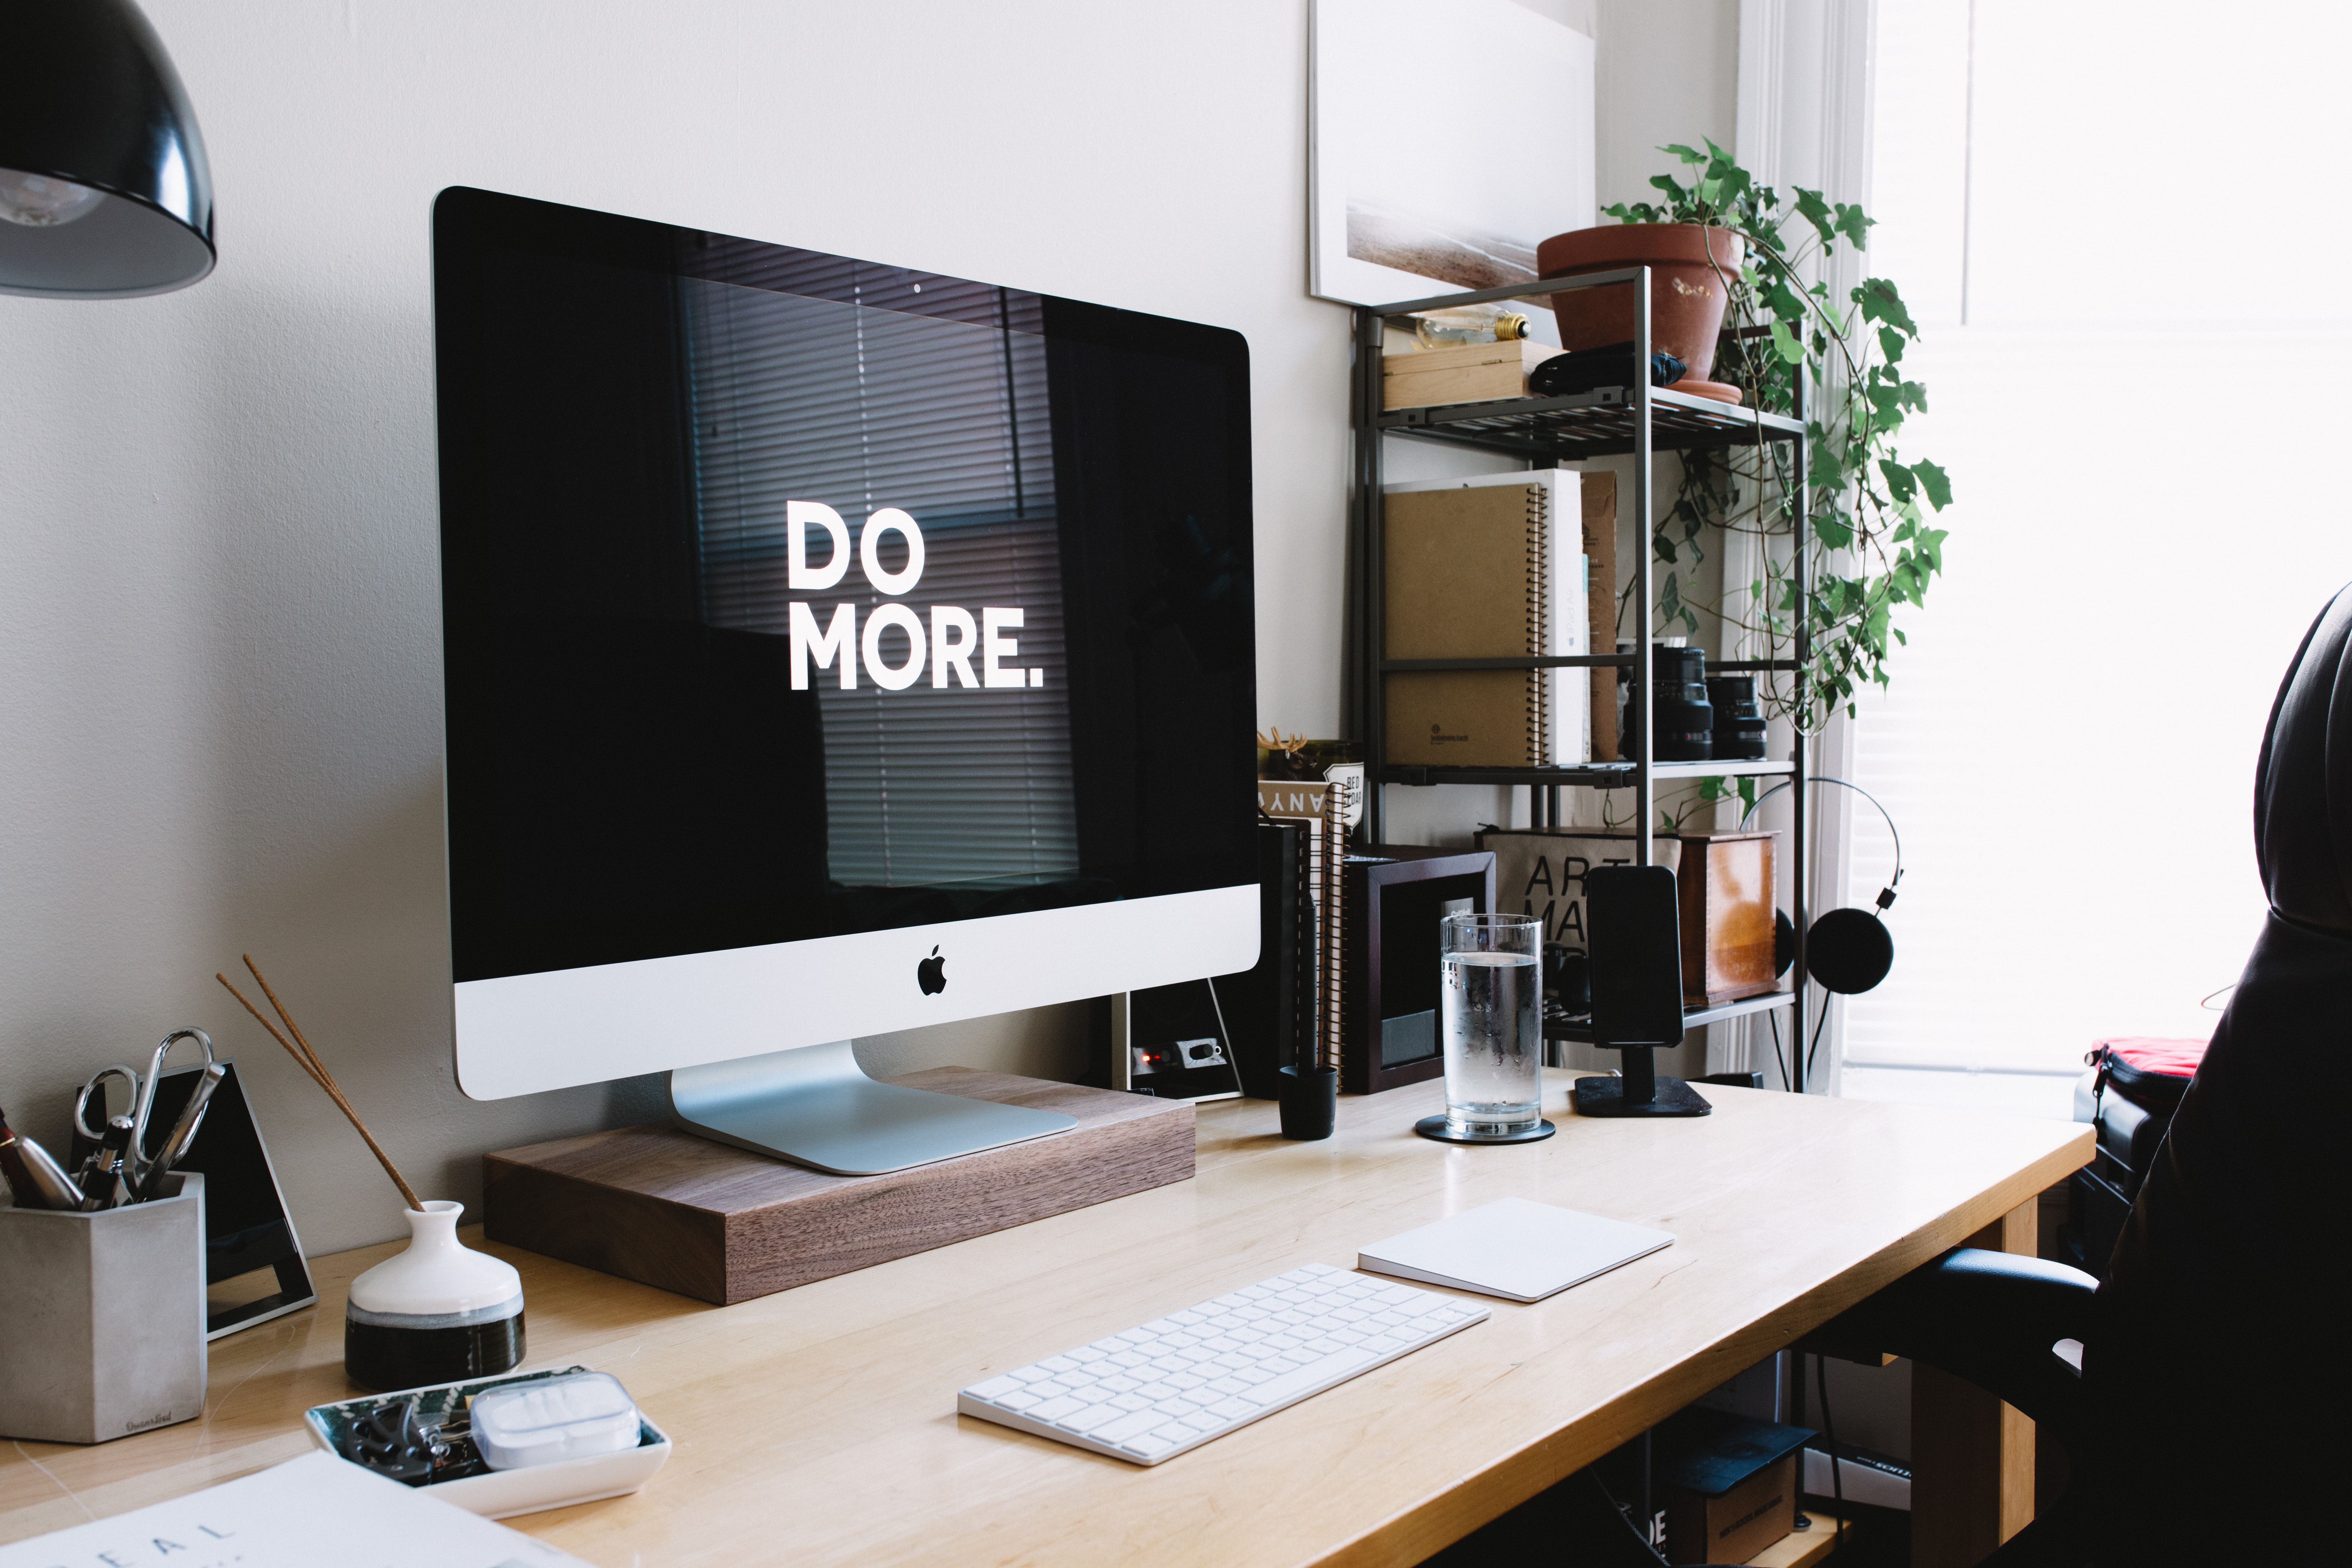 screensaver displaying 'Do More' on organized home office desk